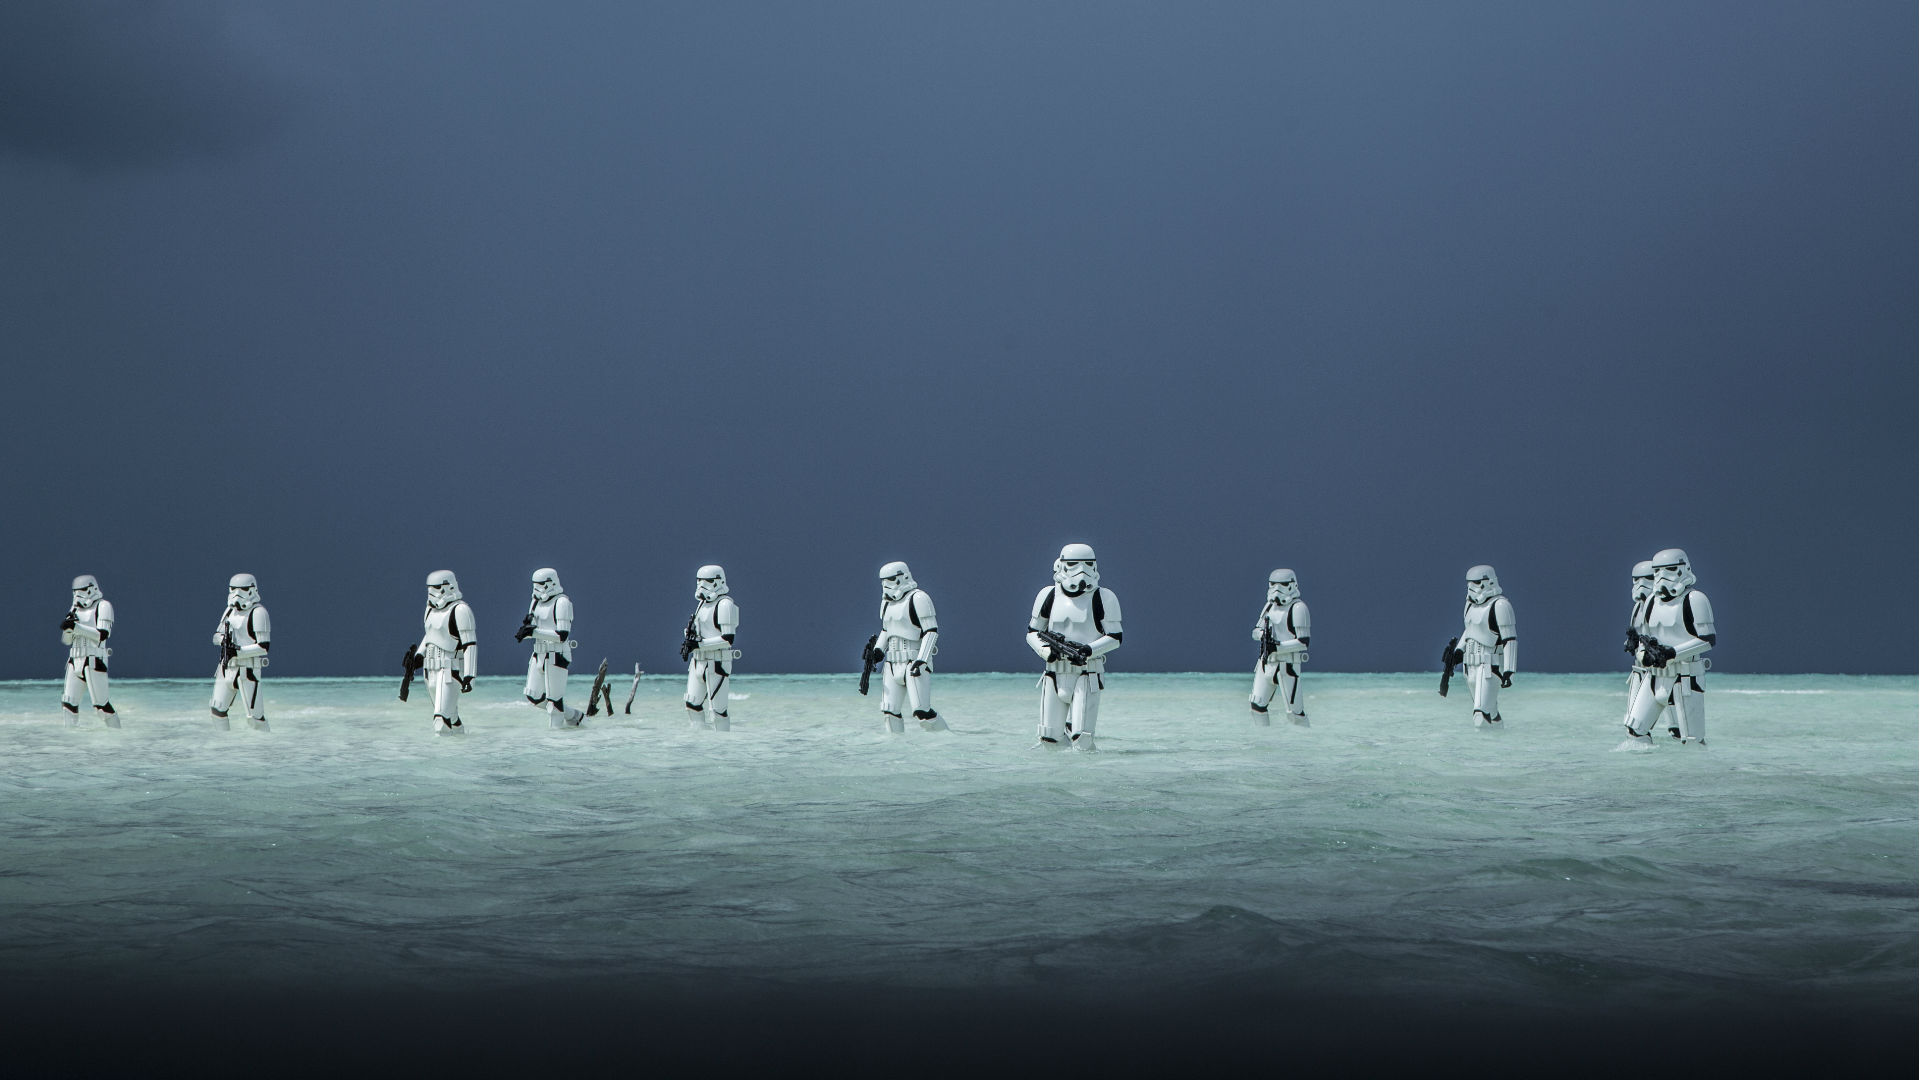 Rogue One: A Star Wars Story Stormtroopers